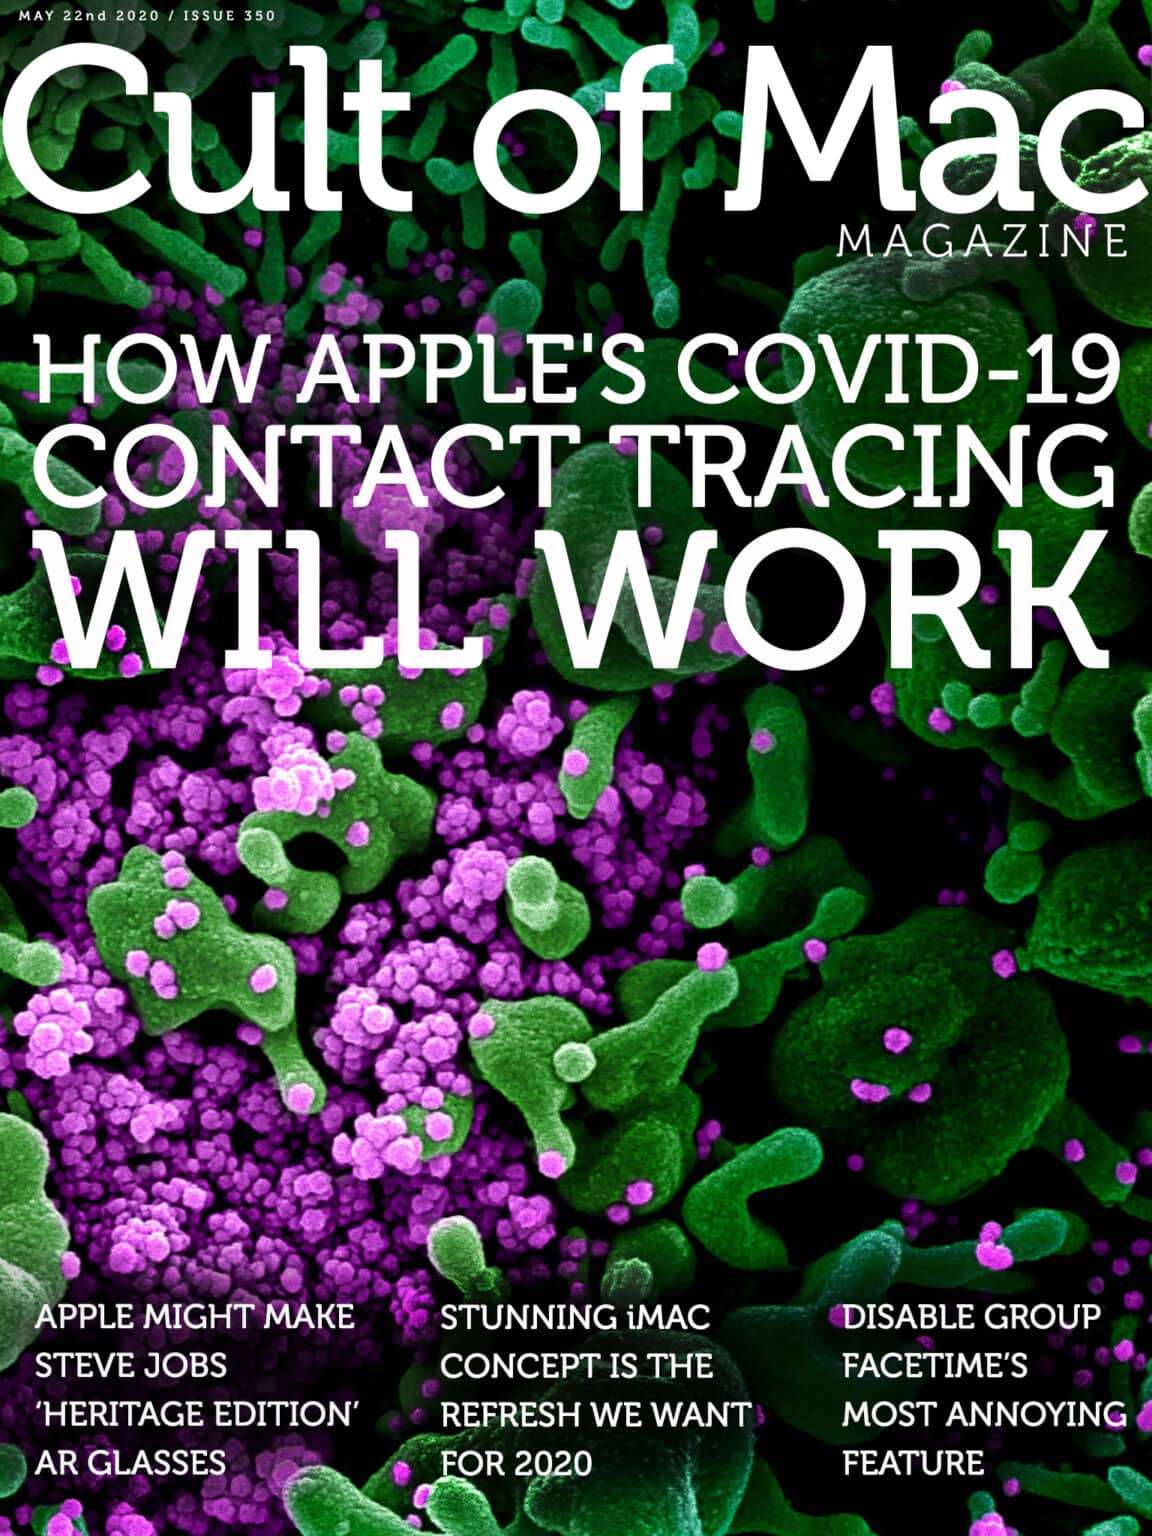 Here's how Apple's COVID-19 contact-tracing system works.